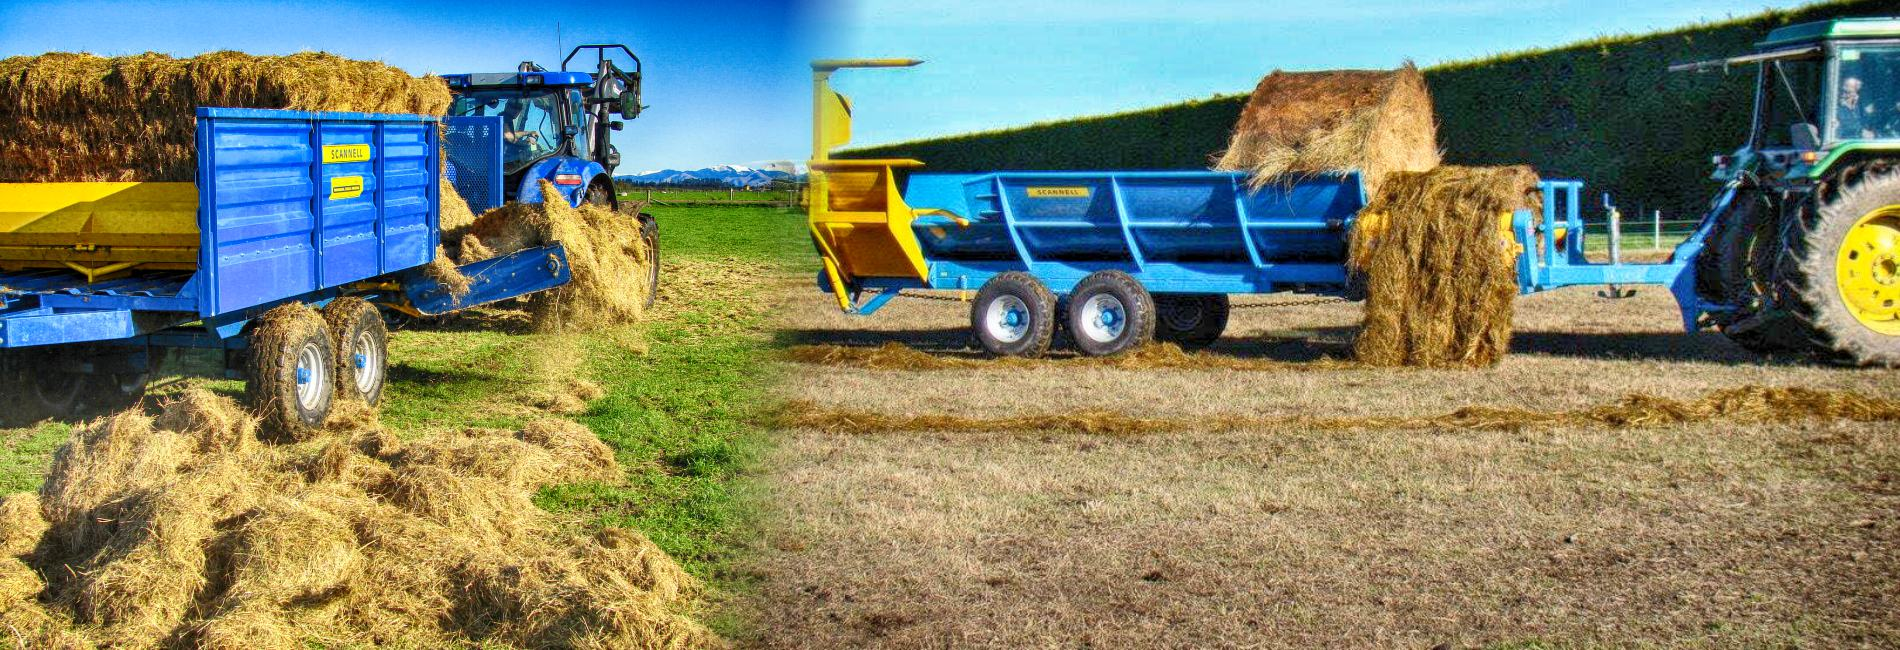 Scannell Hay Equipment